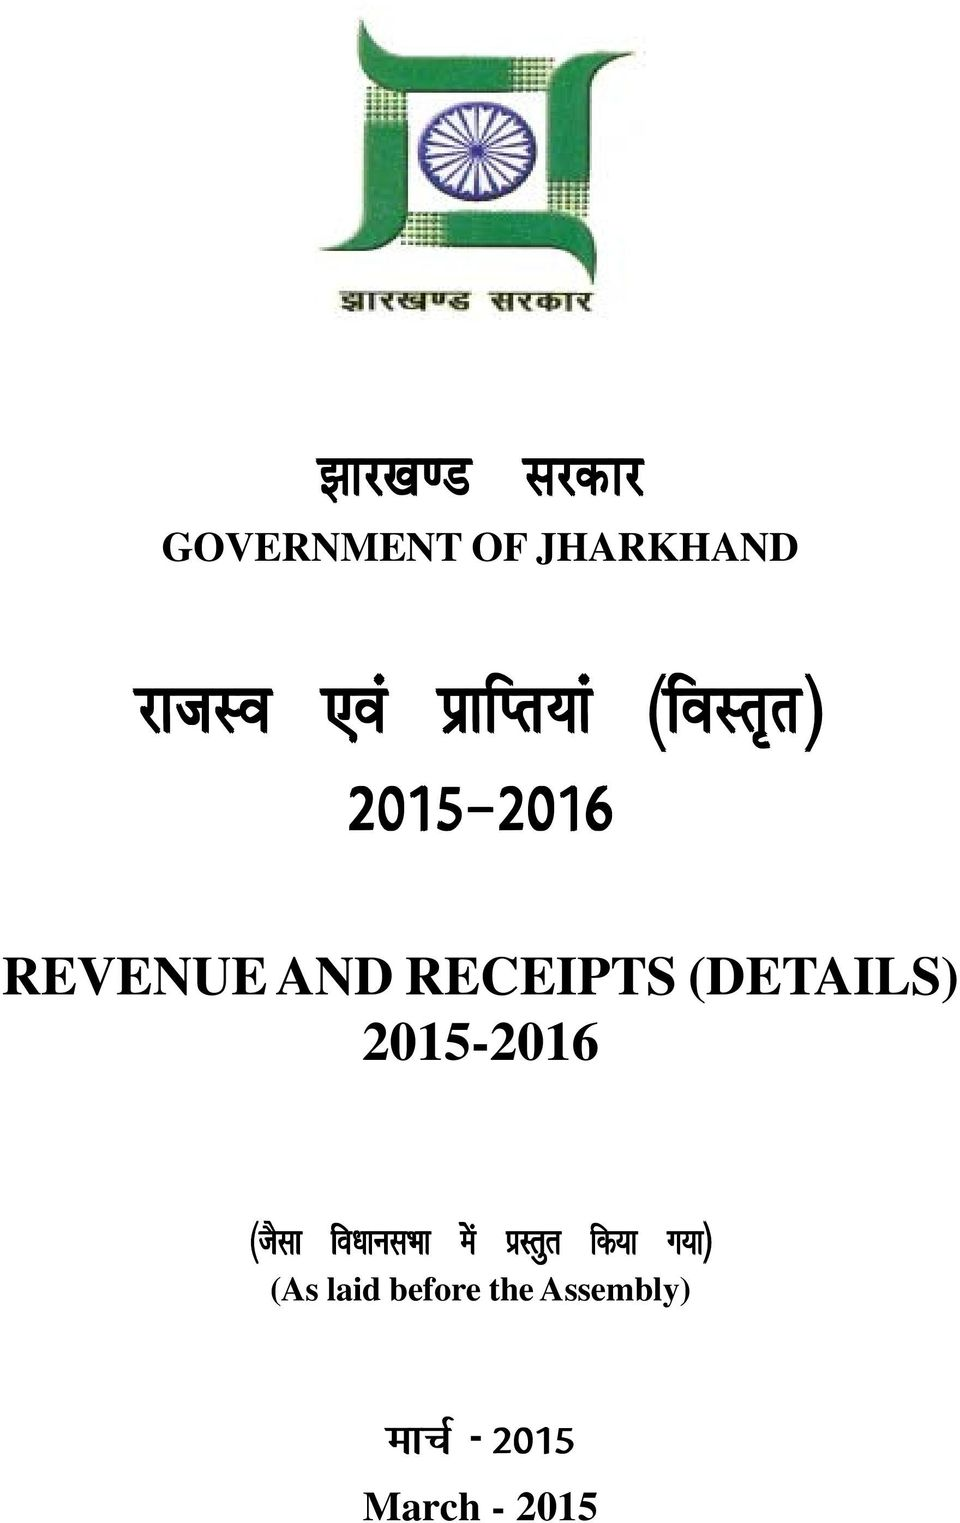 ¼foLr`r½ 2015&2016 REVENUE AND RECEIPTS (DETAILS)